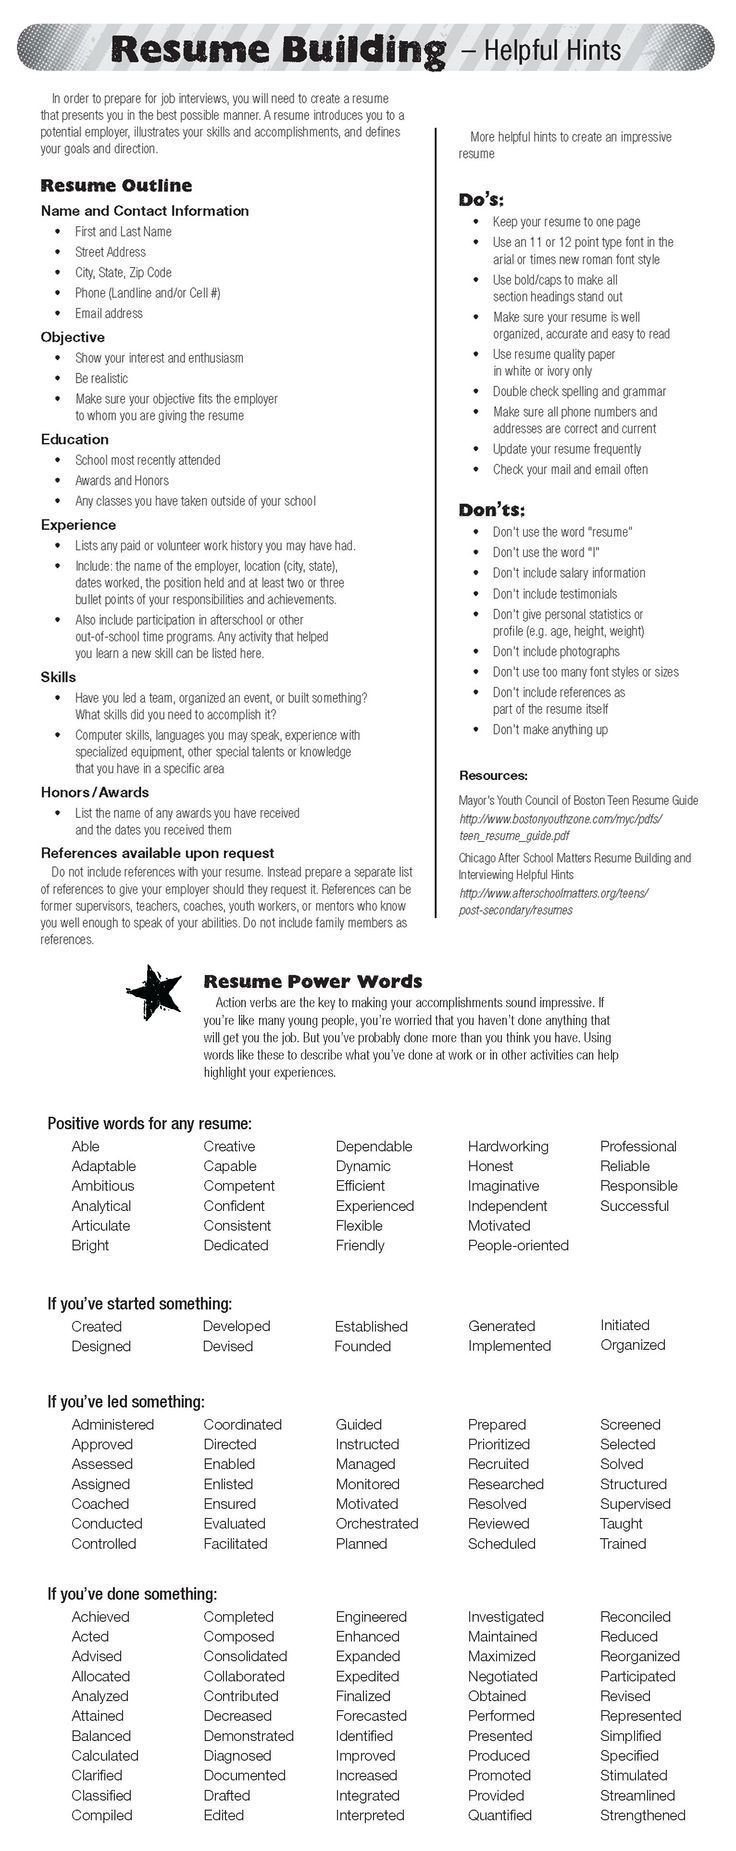 List Of Resume Skills Fair 119 Best Job Resume Images On Pinterest  Gym Career And Productivity